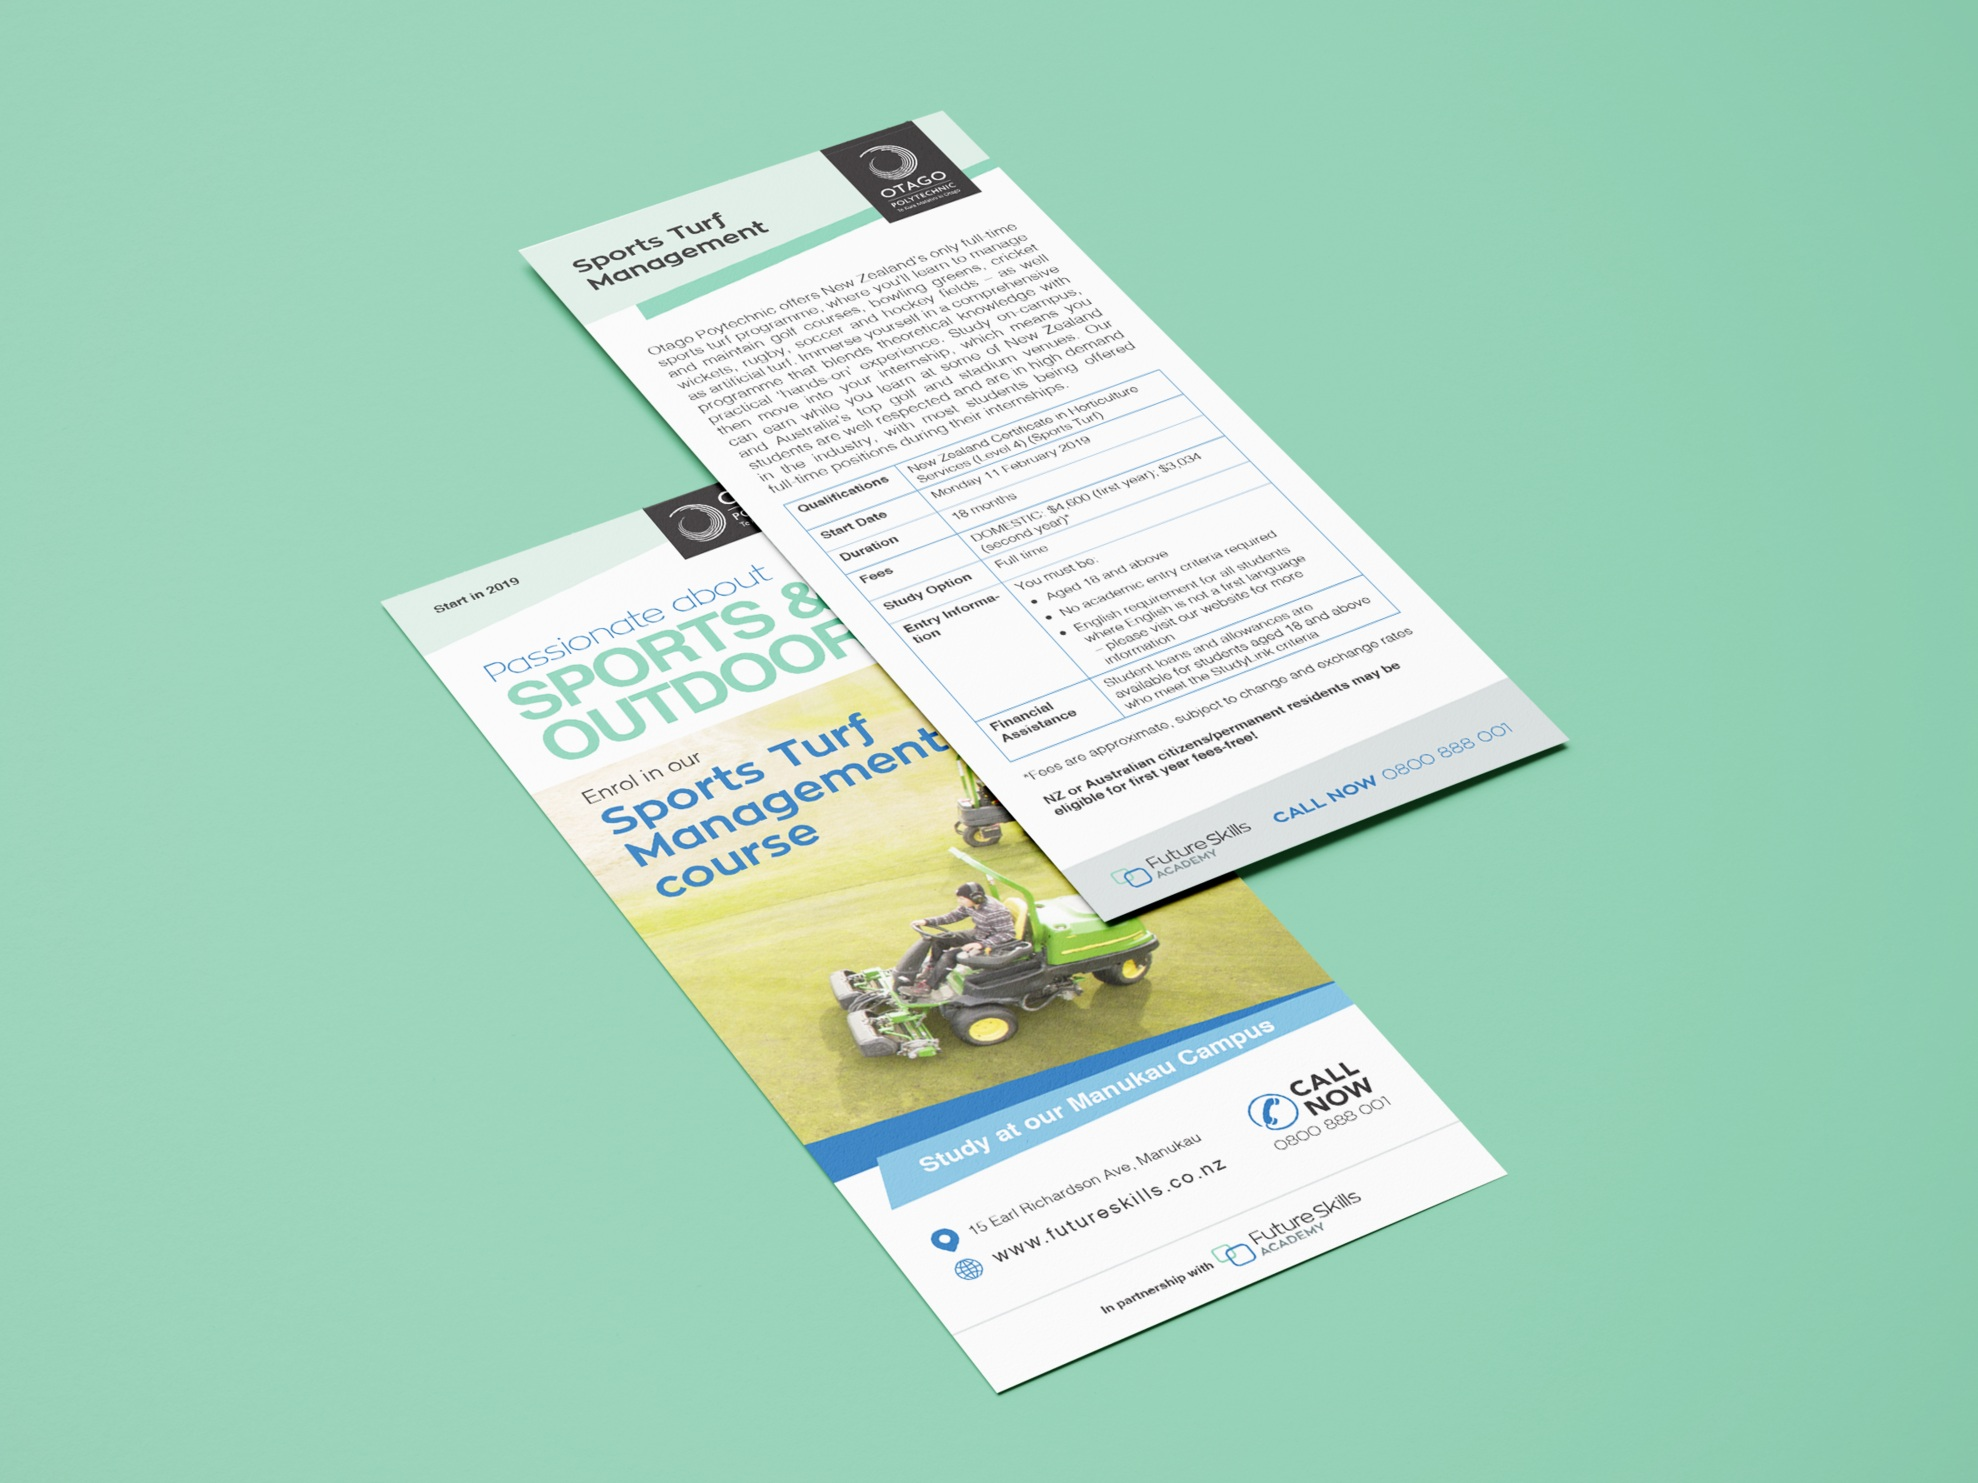 Two layered brochures displaying front and back design